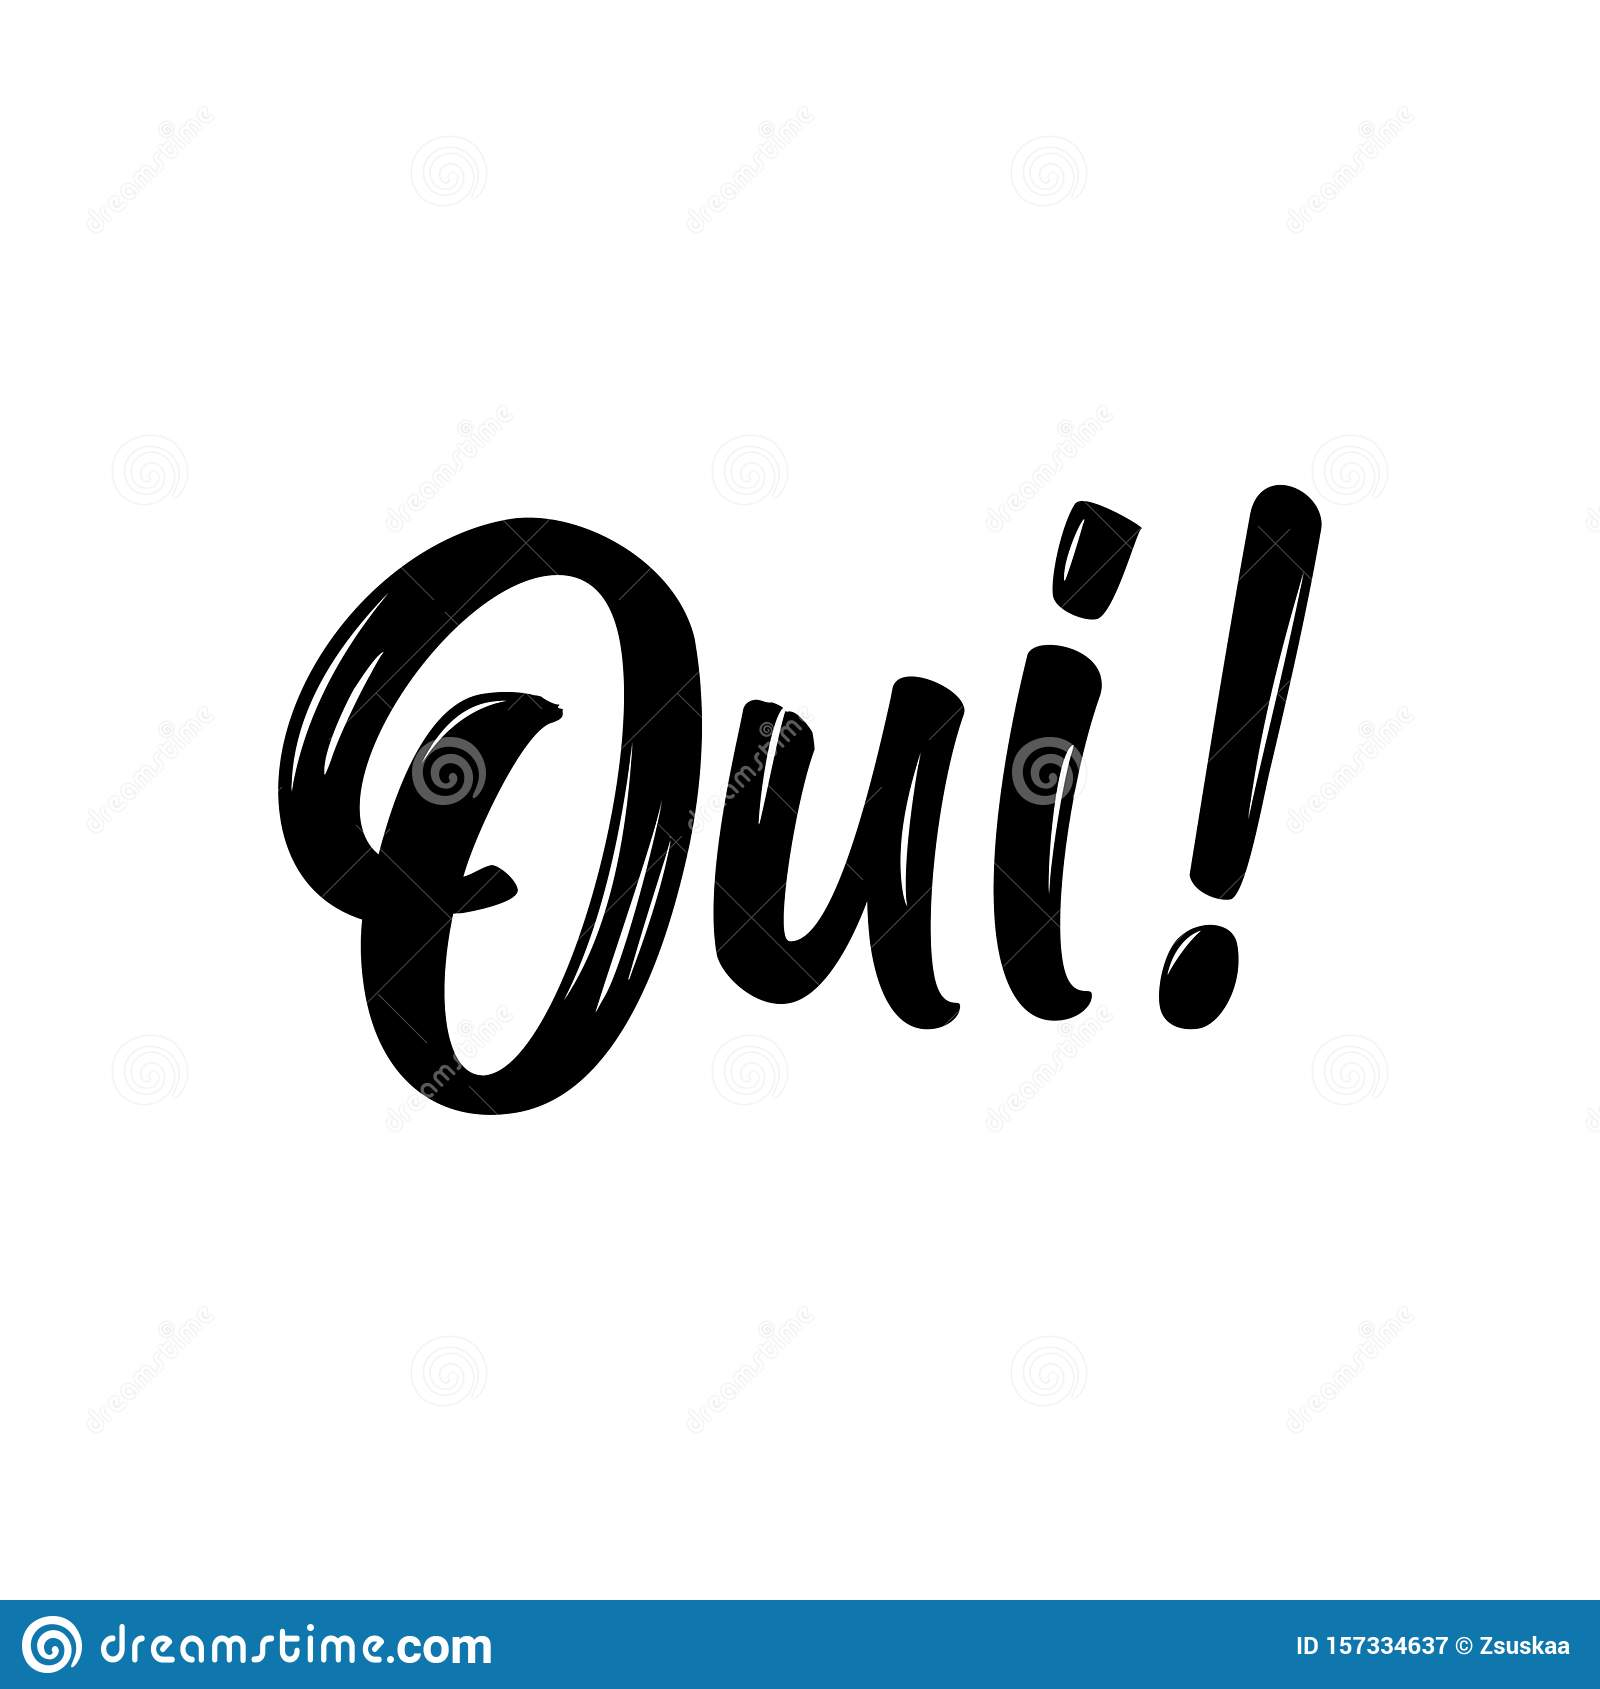 `Oui!` YES in English - French hand drawn lettering quote.